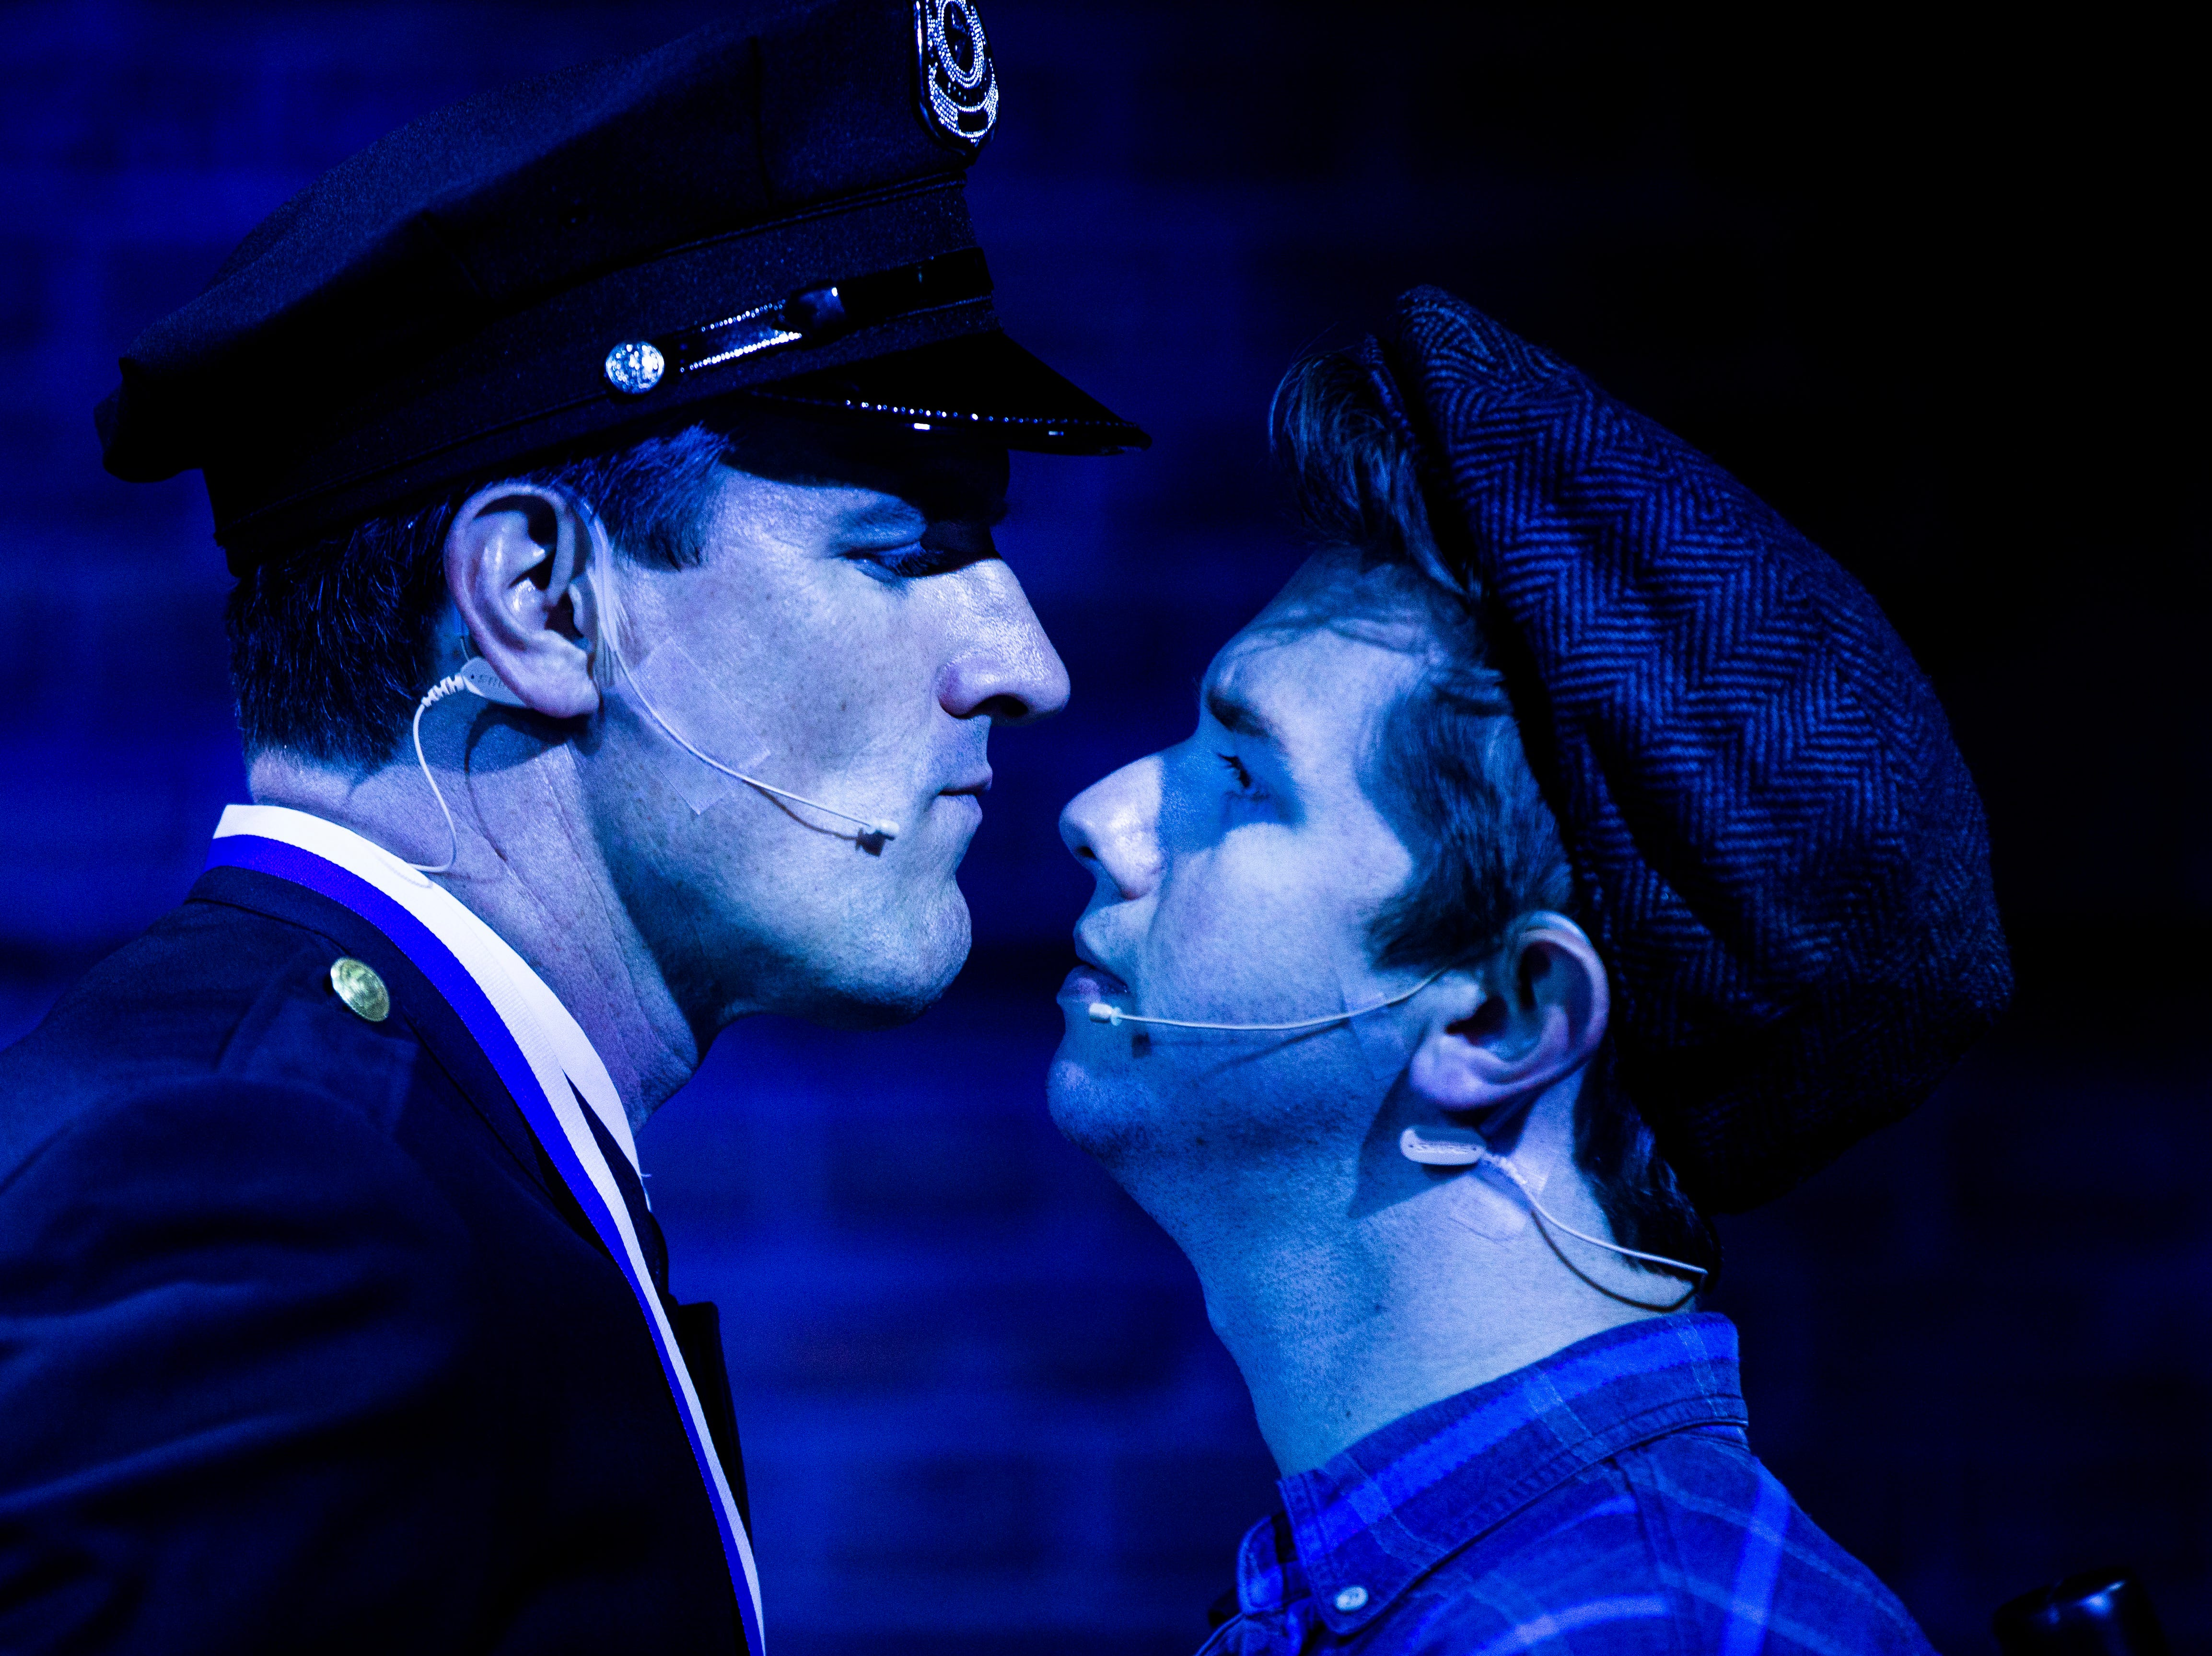 Gerritt VanderMerr, left, as Officer Lockstock, and Christopher Lewis, as Bobby Strong, rehearse a scene for TheatreZone's upcoming production of Urinetown in collaboration with Florida Gulf Coast University in Fort Myers on Monday, Oct. 8, 2018. Urinetown is a hilarious musical satire of the legal system, capitalism, social irresponsibility, populism, bureaucracy, corporate mismanagement, municipal politics and musical theatre itself.